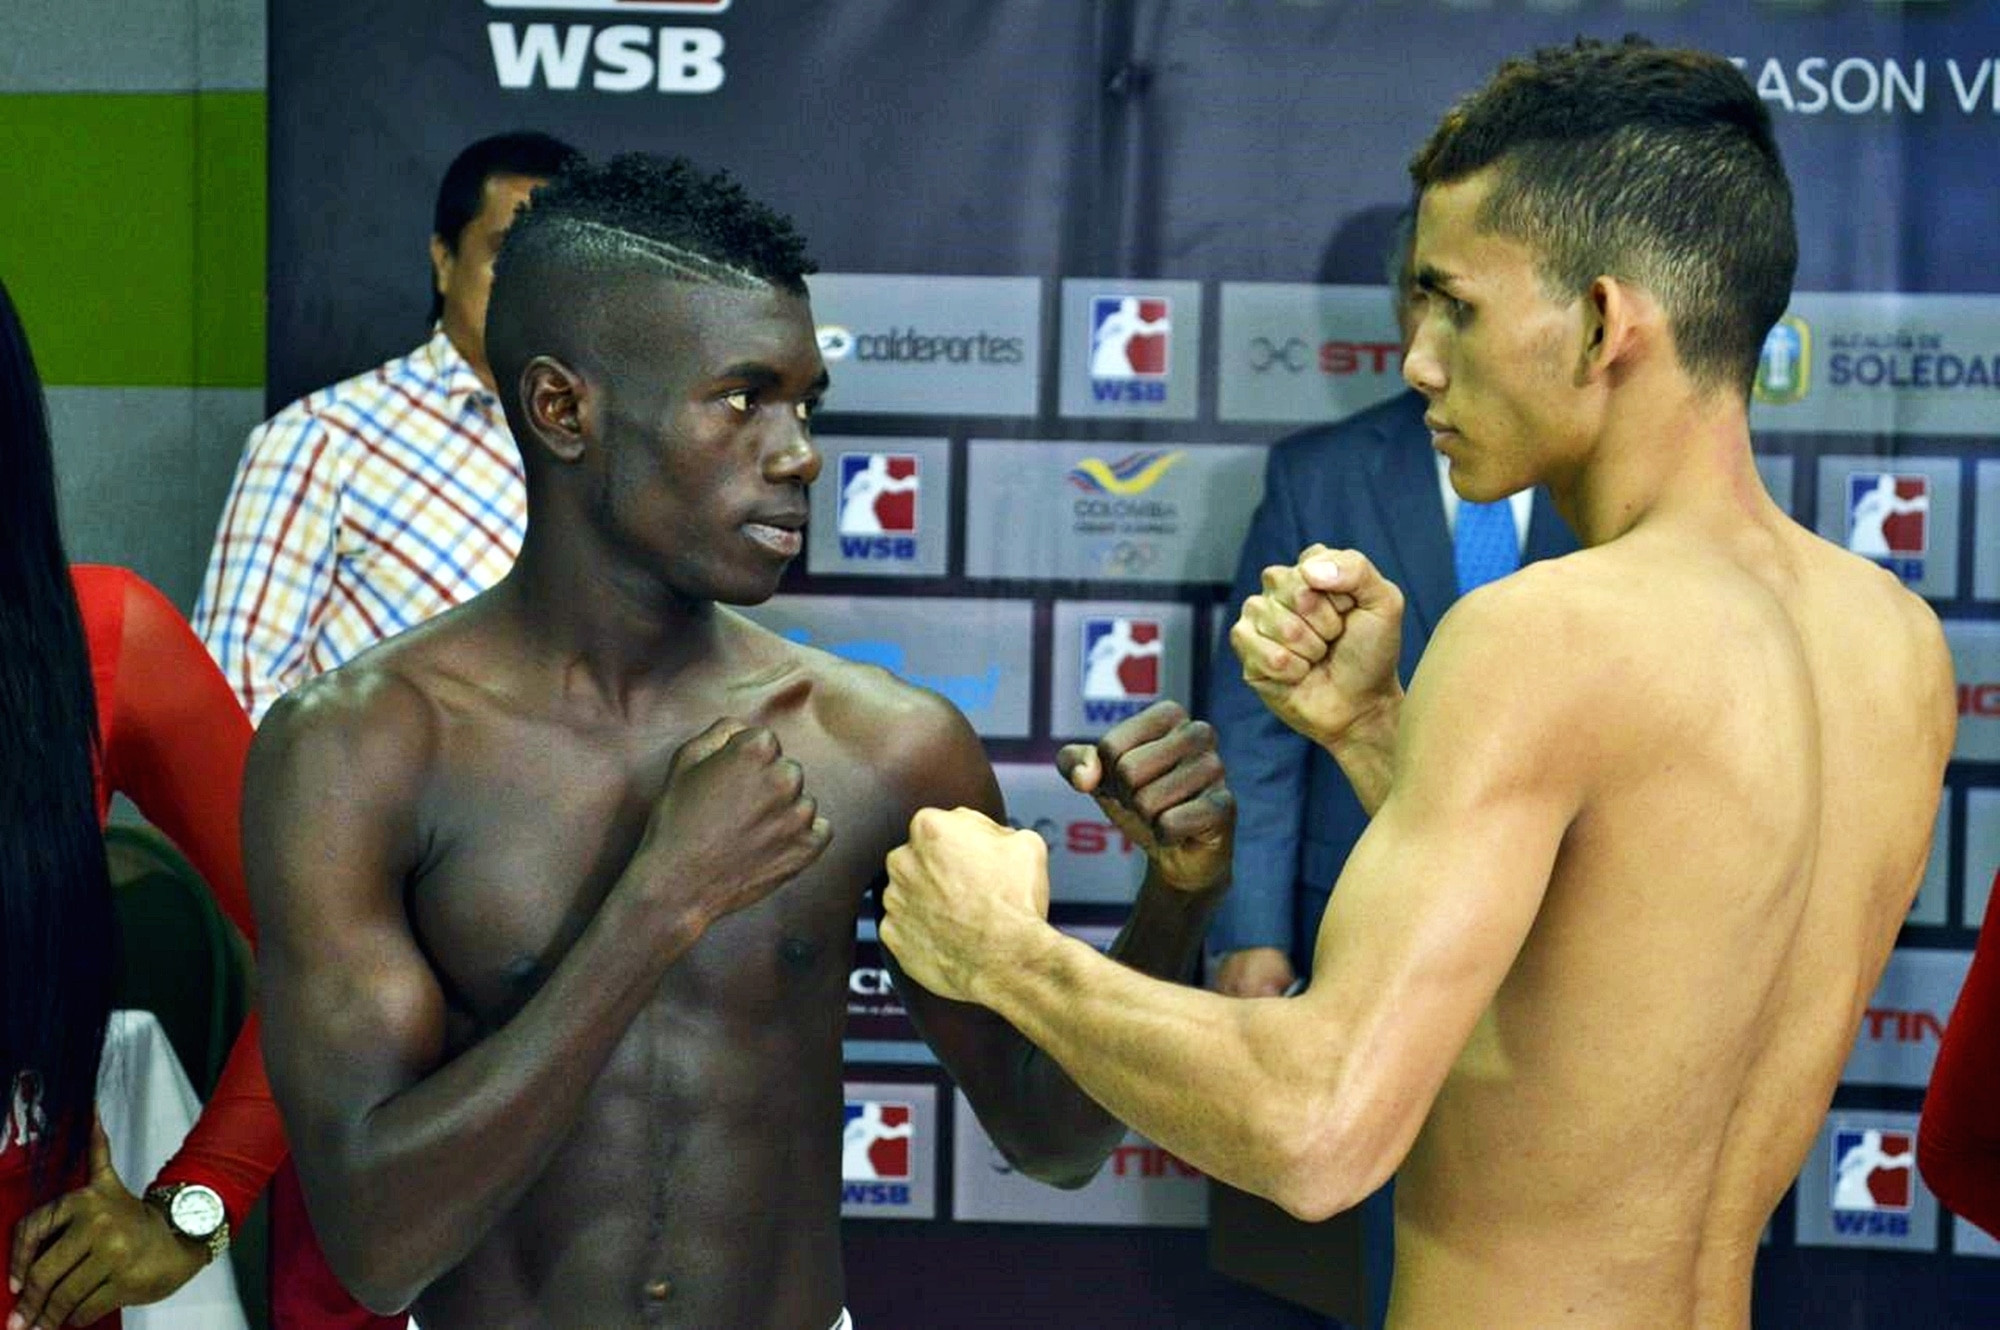 Colombia Heroicos clinch narrow win over Caciques Venezuela in World Series of Boxing